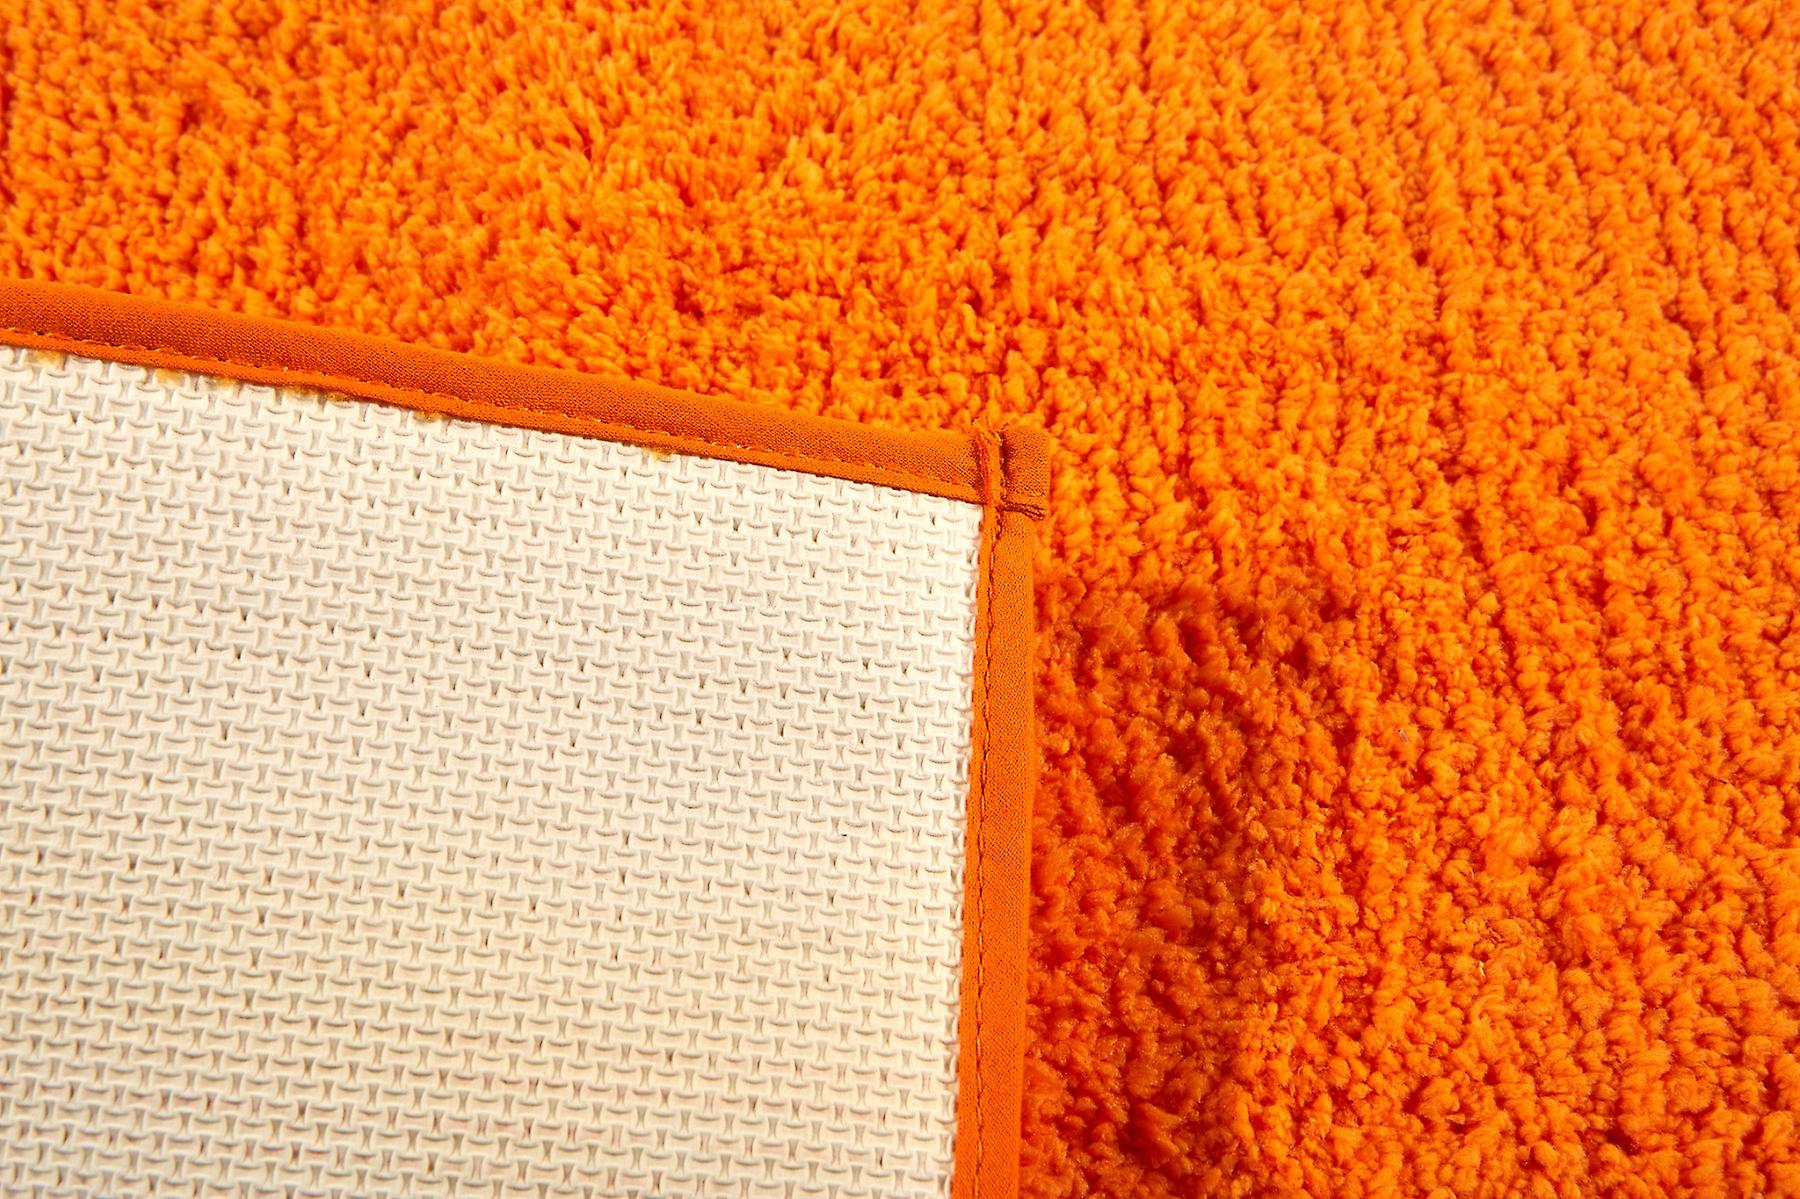 Badteppich Orange Heine Home Badteppich Mikrofaser 45x50cm Orange